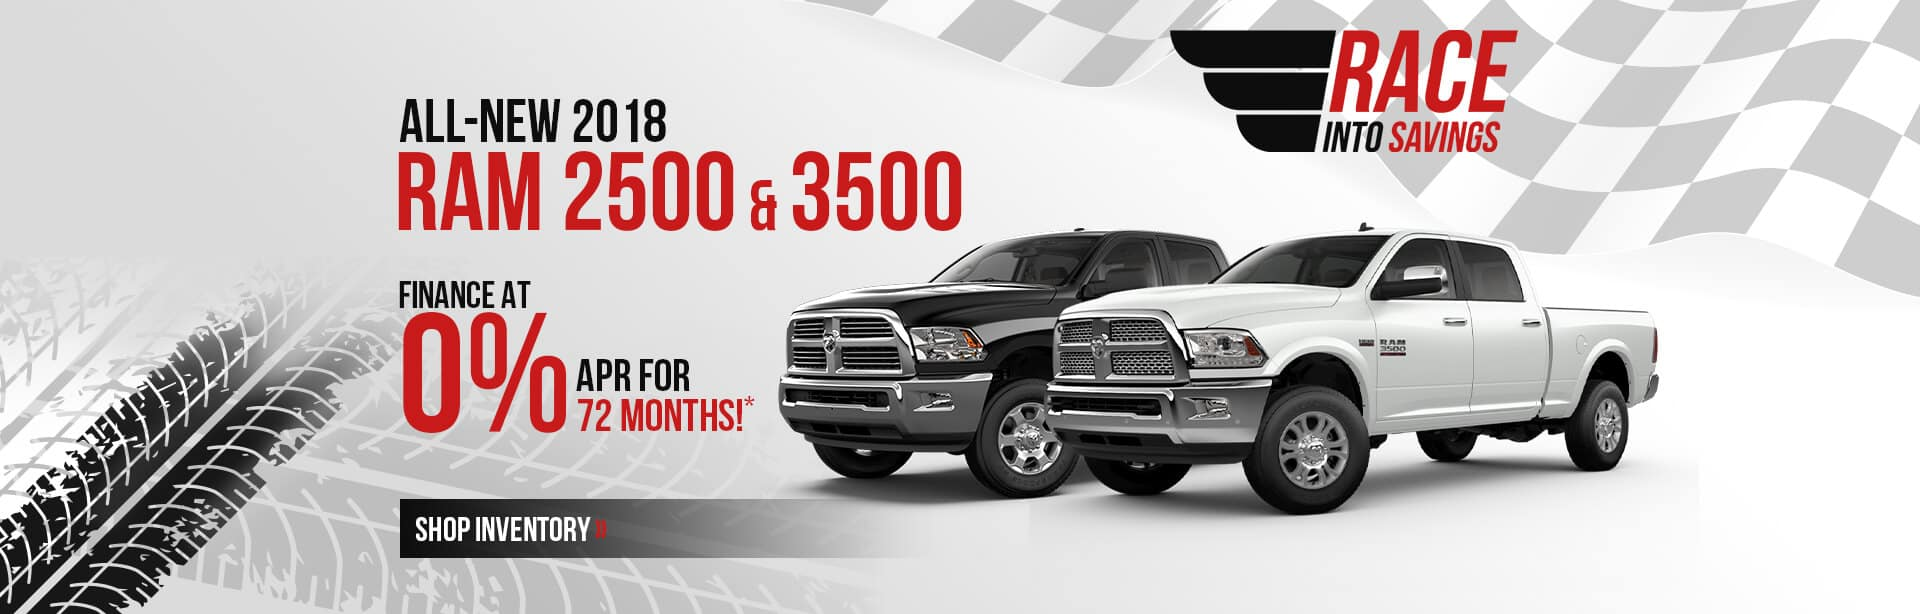 Finance a New RAM 2500 & 3500 Trucks at 0% for 72 months near Lafayette, IN.